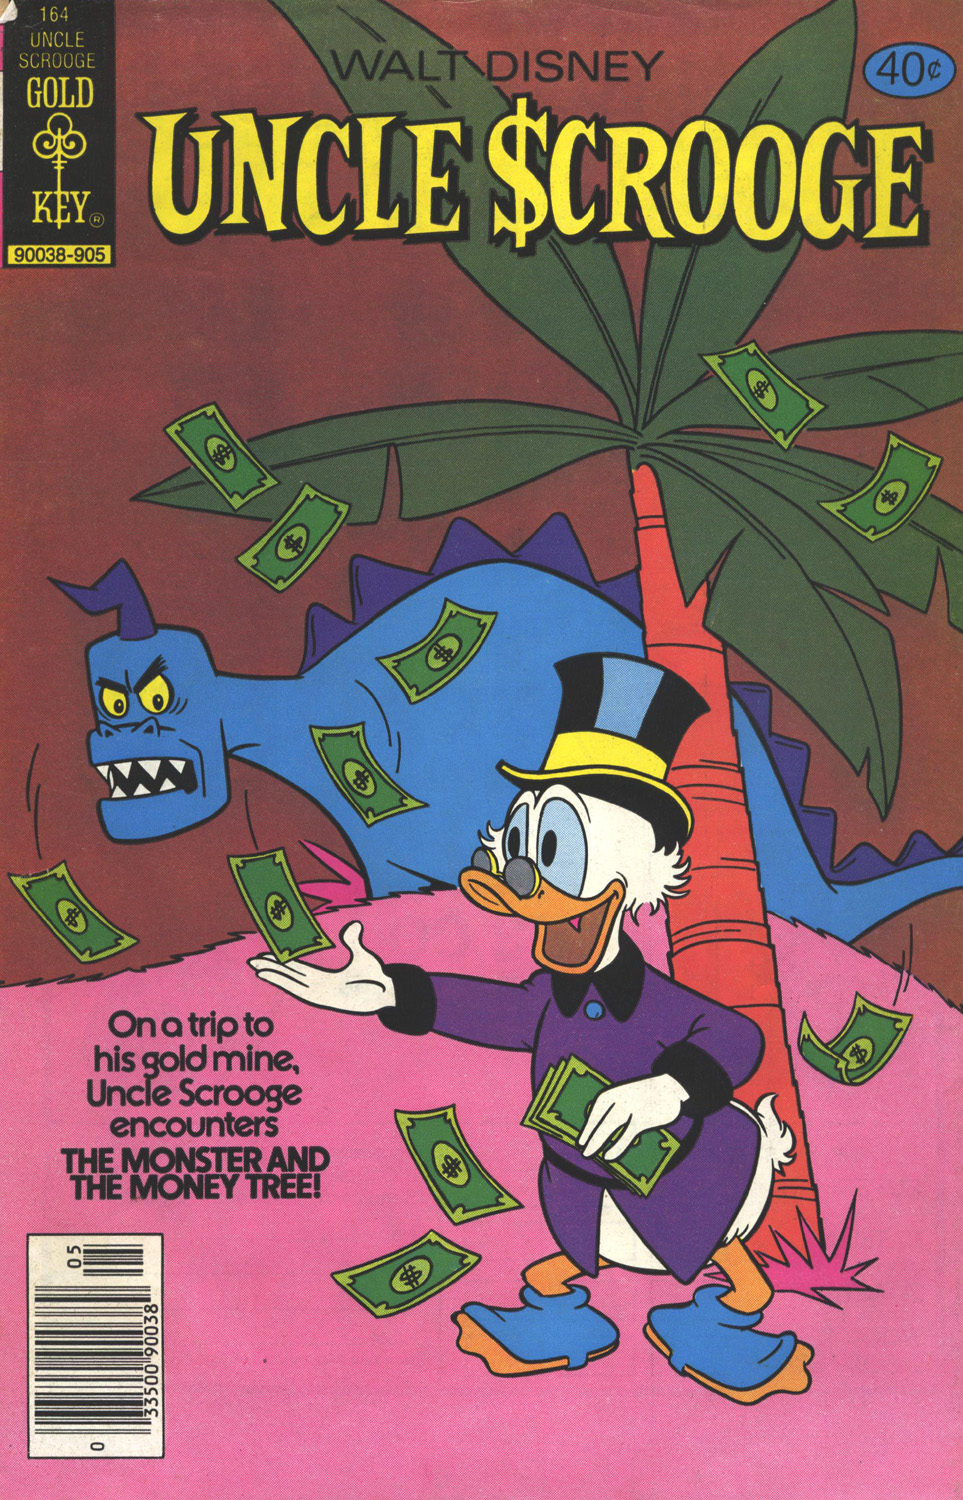 Uncle Scrooge (1953) Issue #164 #164 - English 1